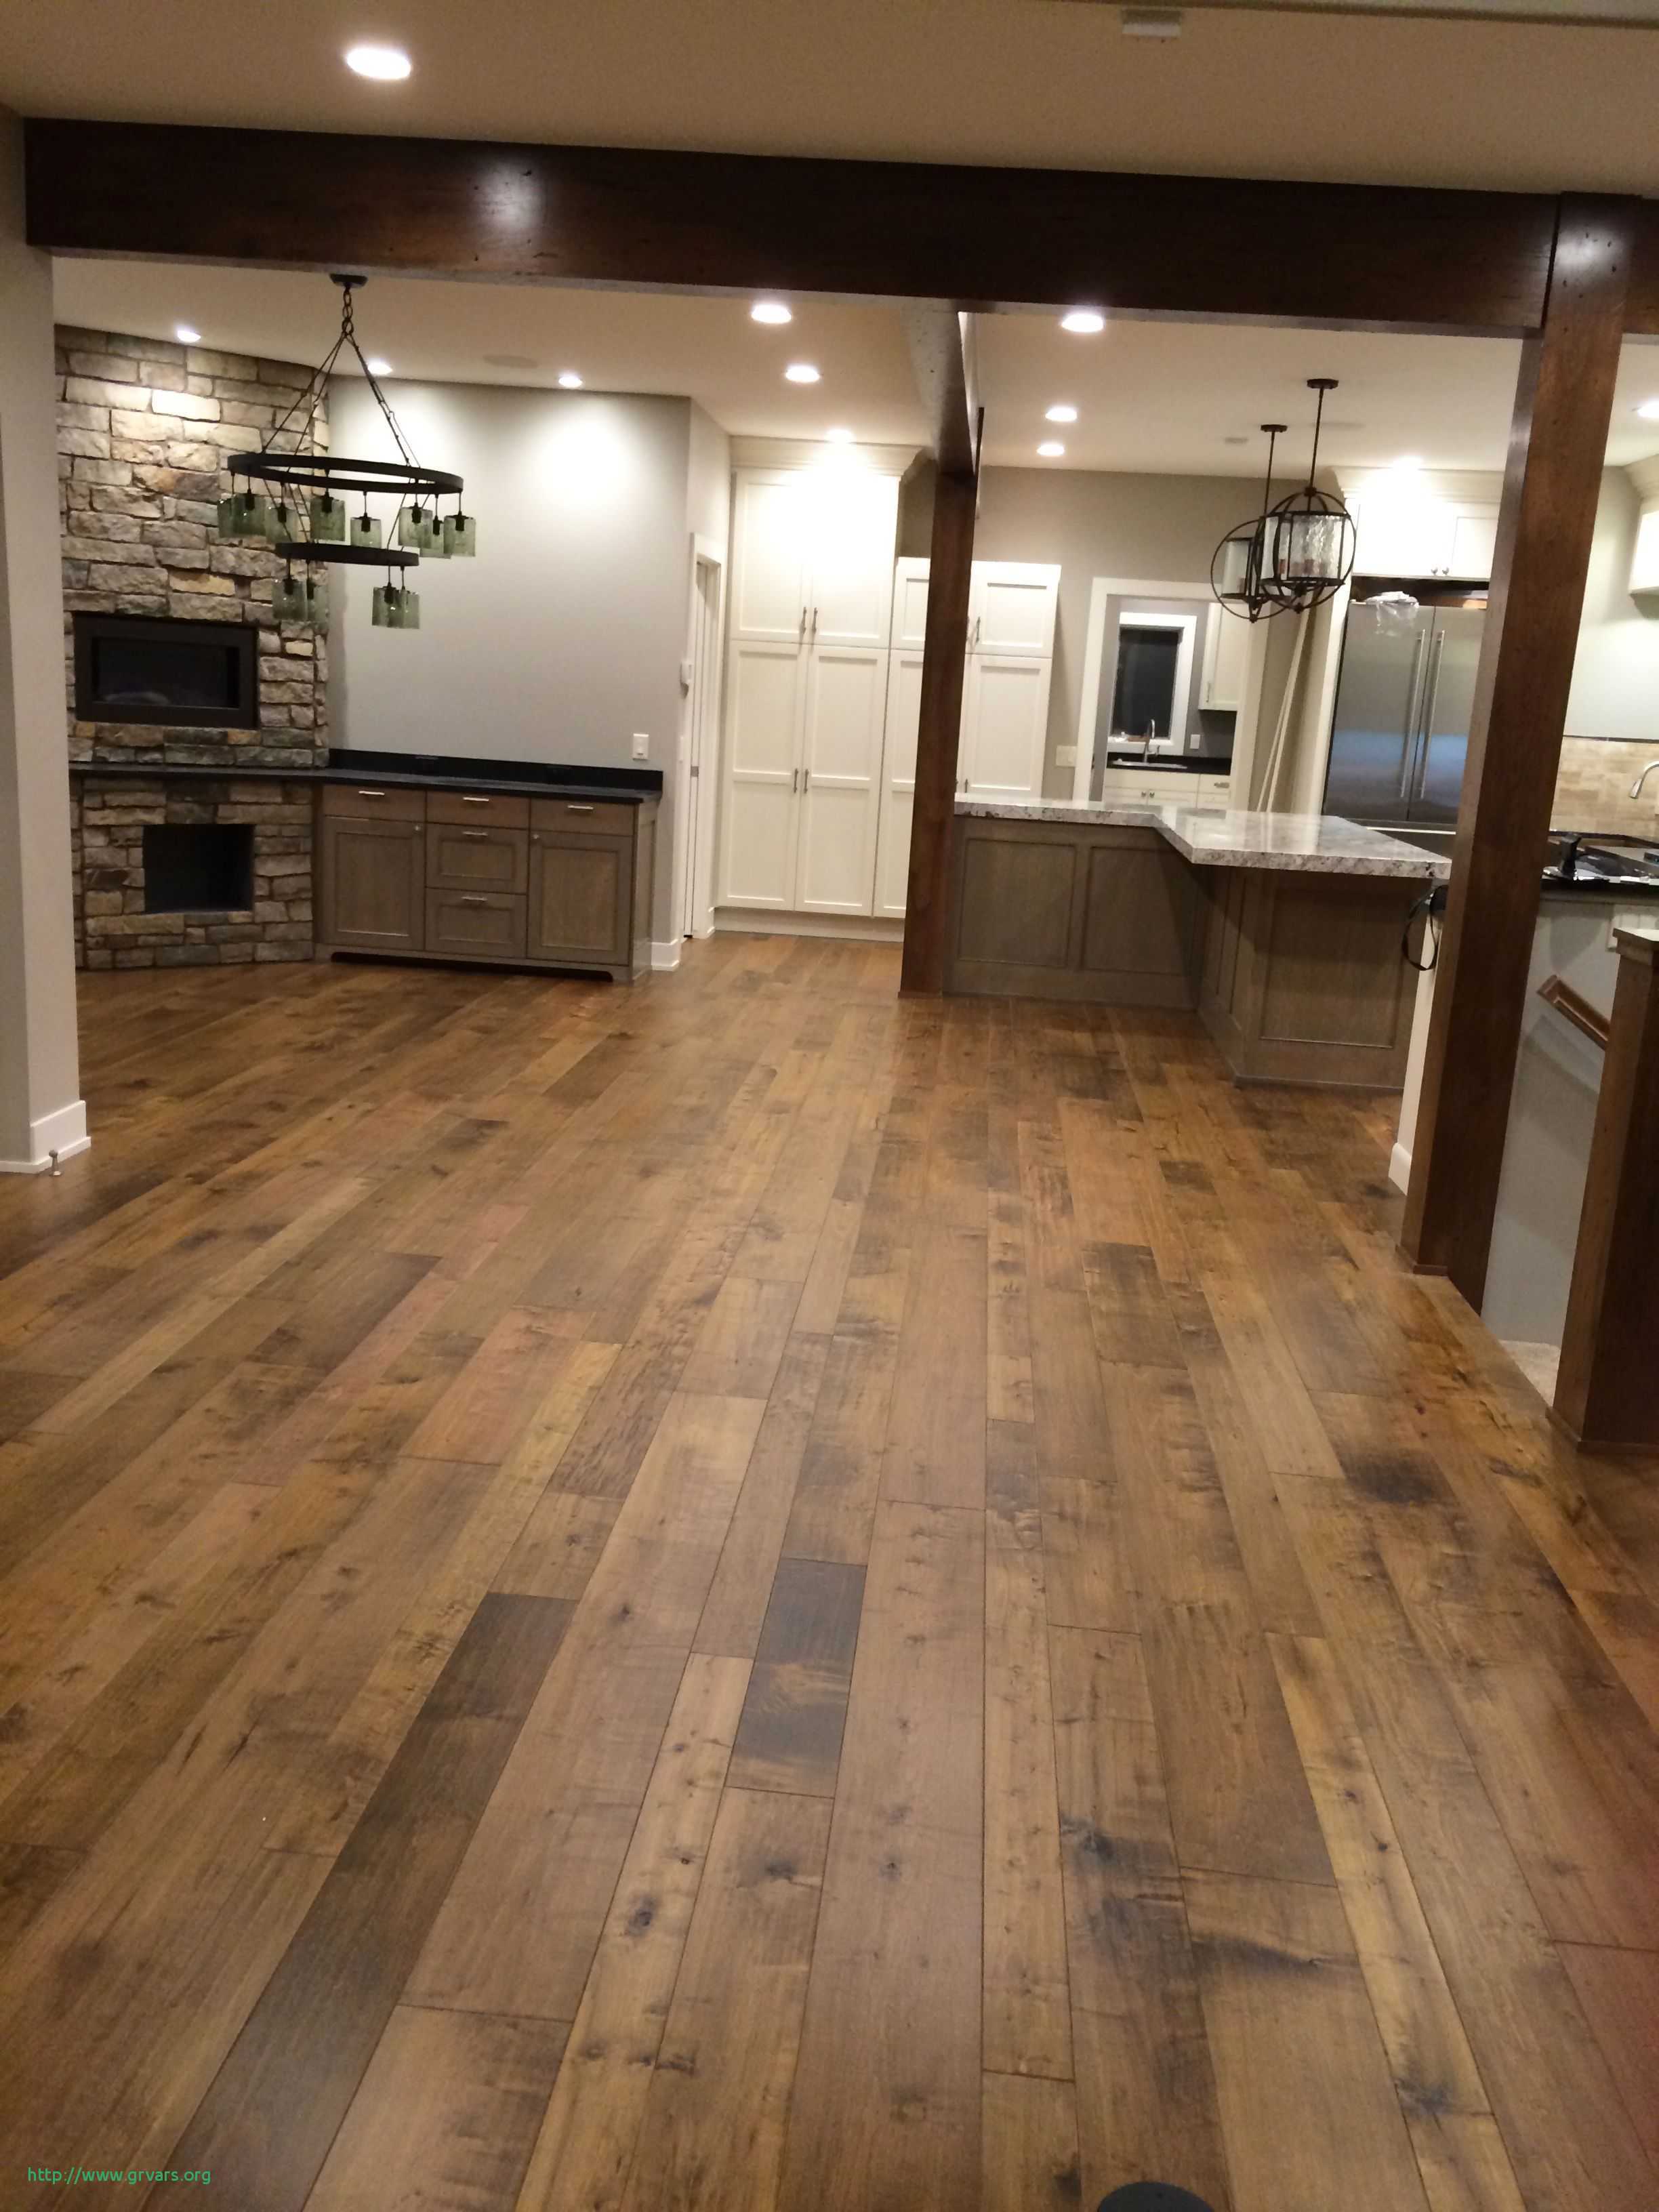 hardwood floors johannesburg of 21 nouveau how much to have laminate flooring installed ideas blog pertaining to how much to have laminate flooring installed impressionnant monterey hardwood collection rooms and spaces